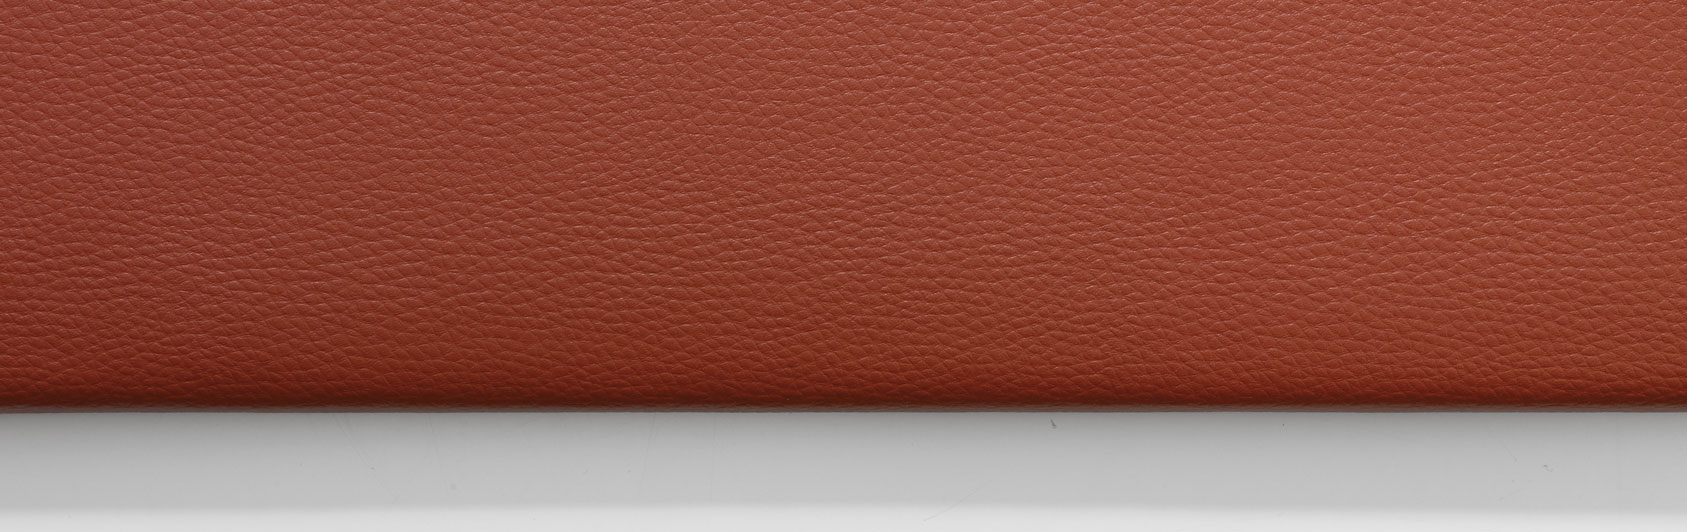 sample hassock faux leather color code 4358 color mahagoni